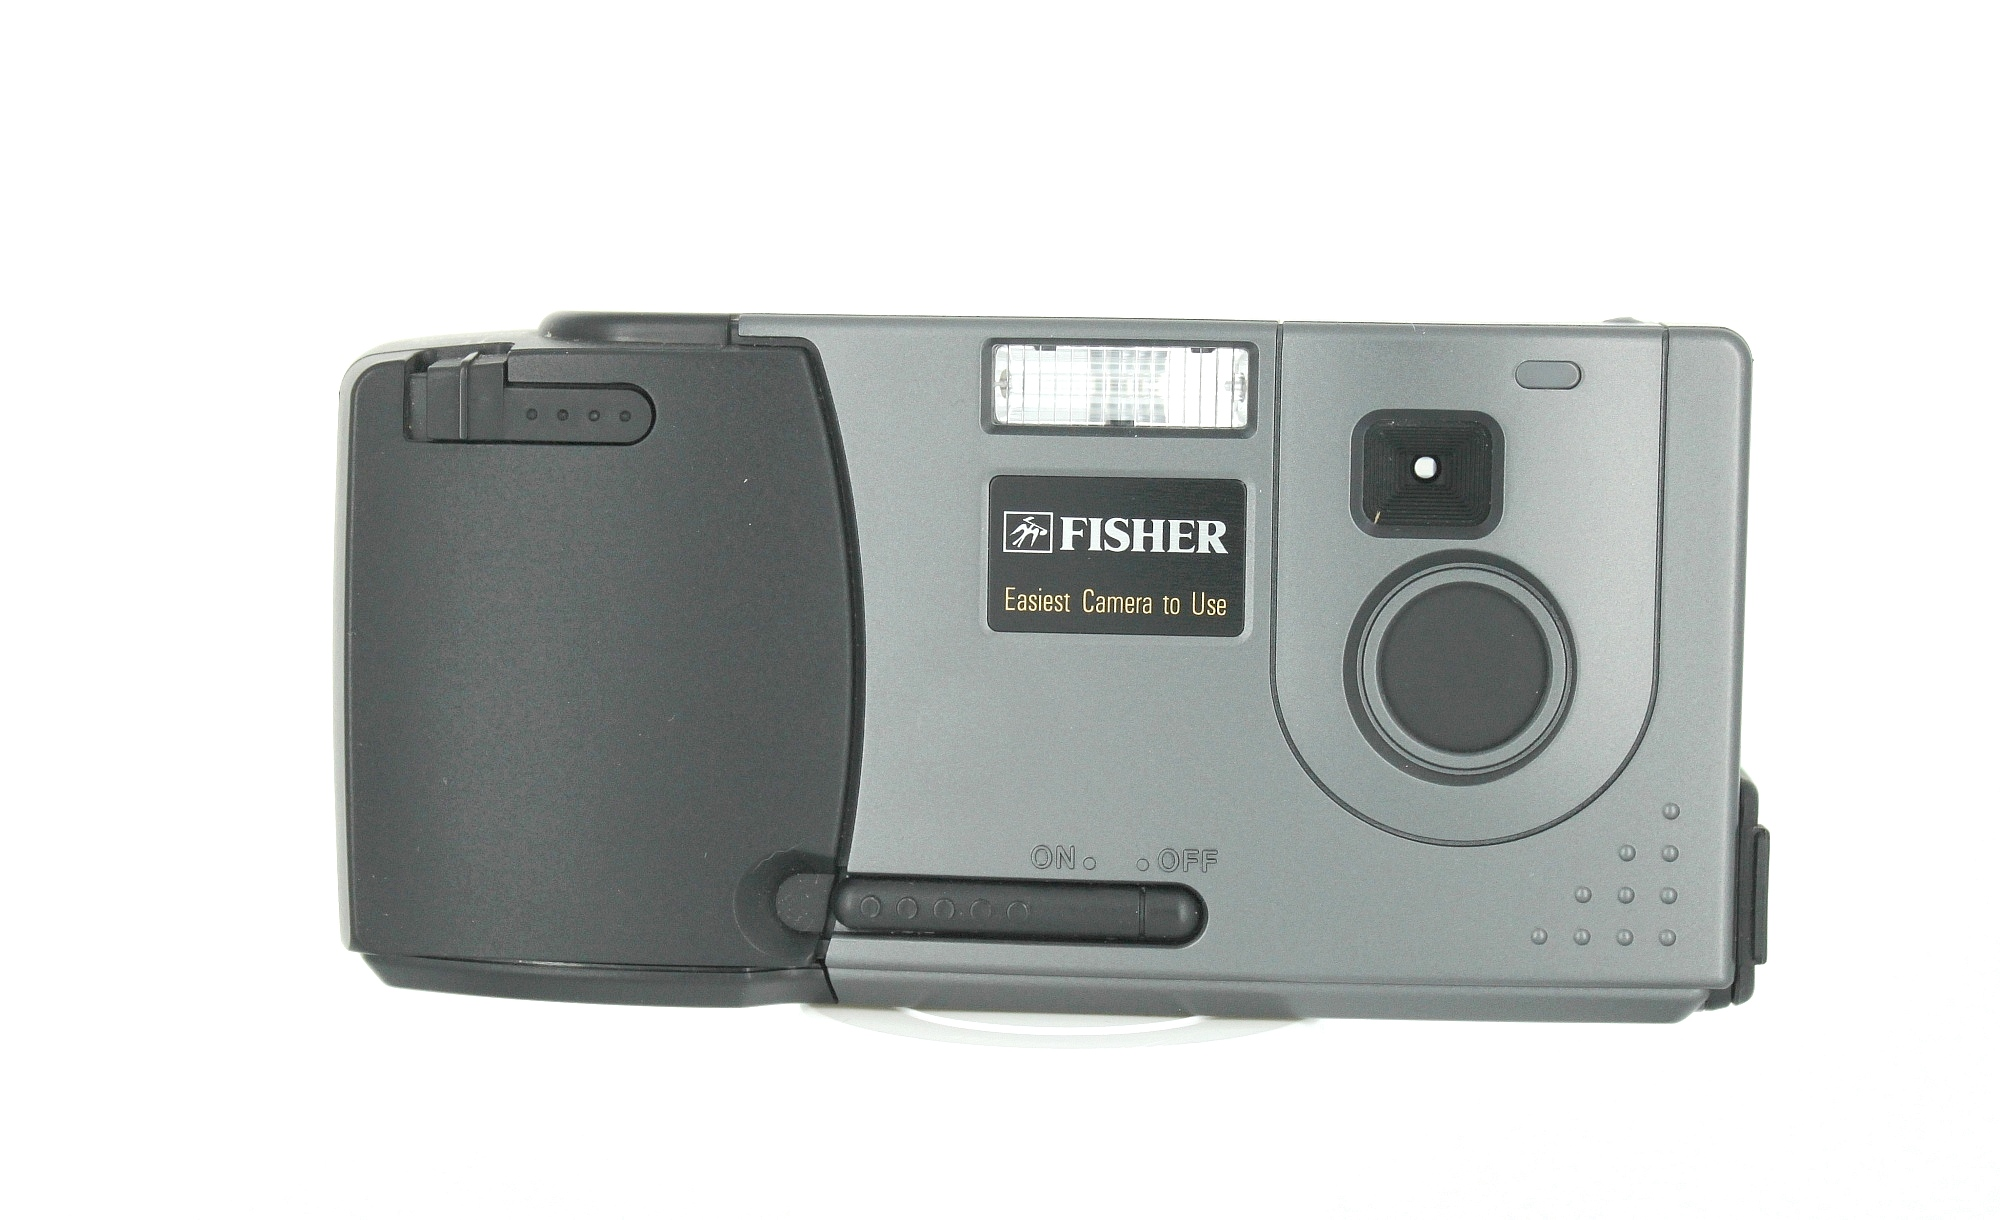 (Sanyo) Fisher FVD-V1 (1998)